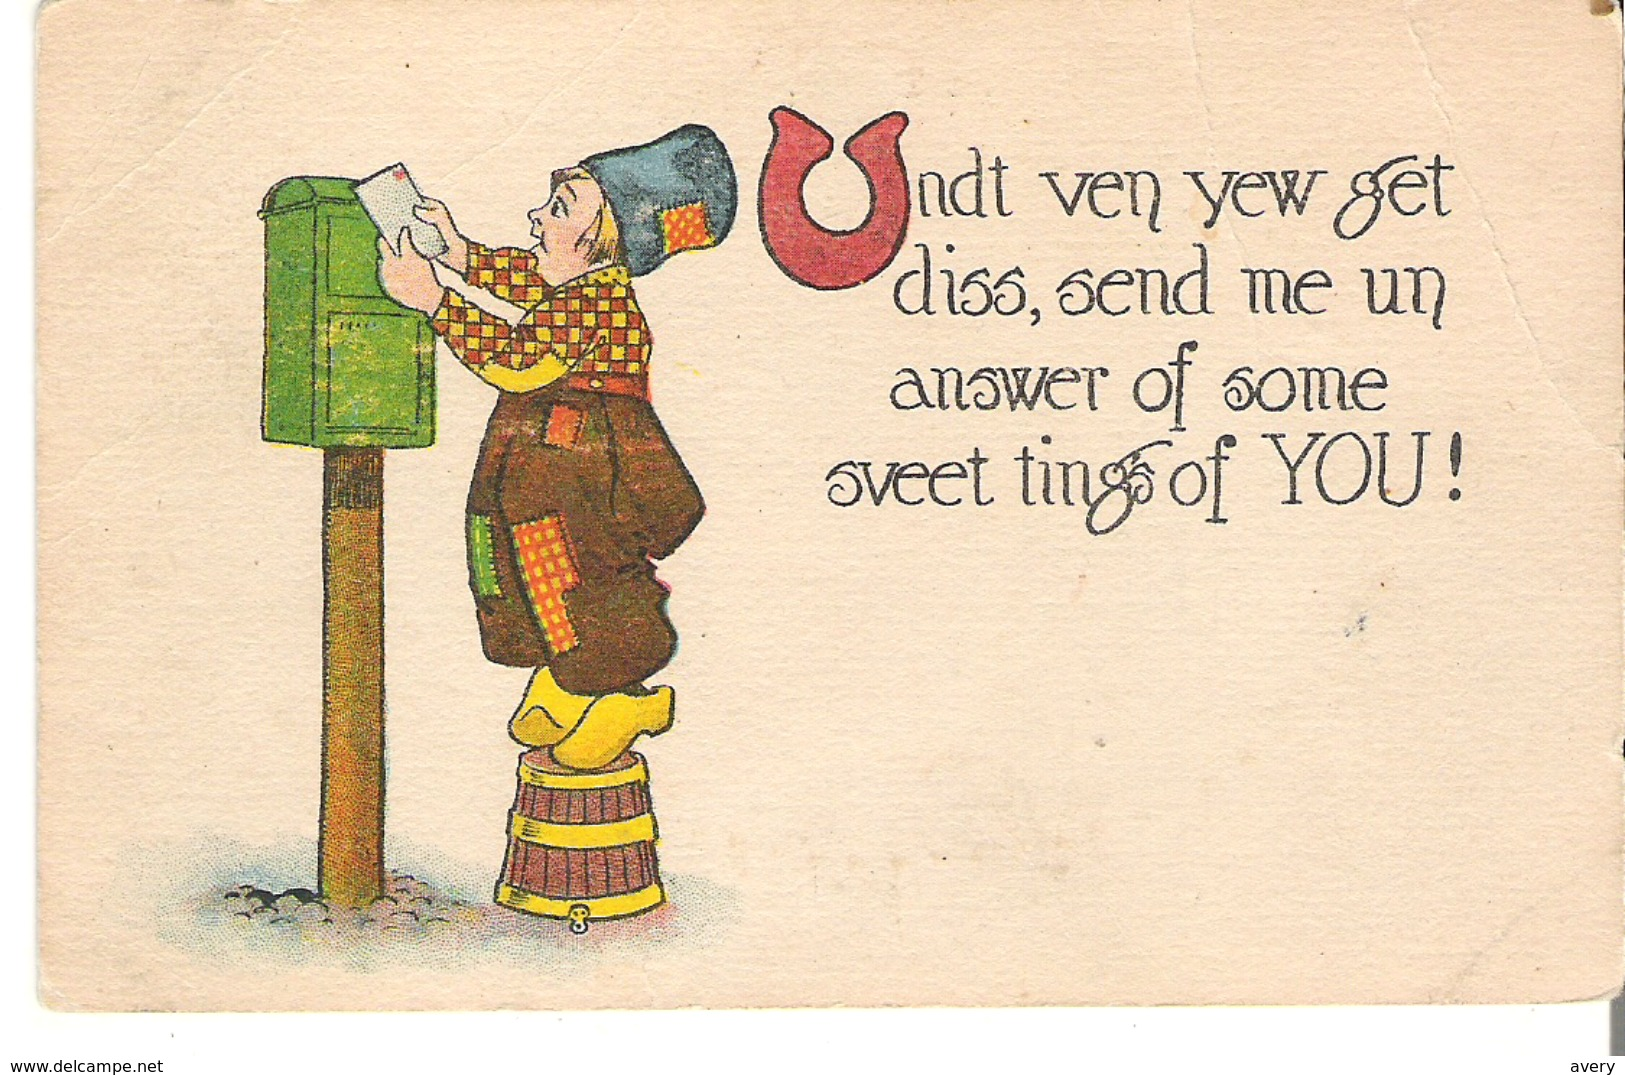 Undt Ven Yew Get Diss, Send Me Un Answer Of Some Sveet Tings Of You! - Humour